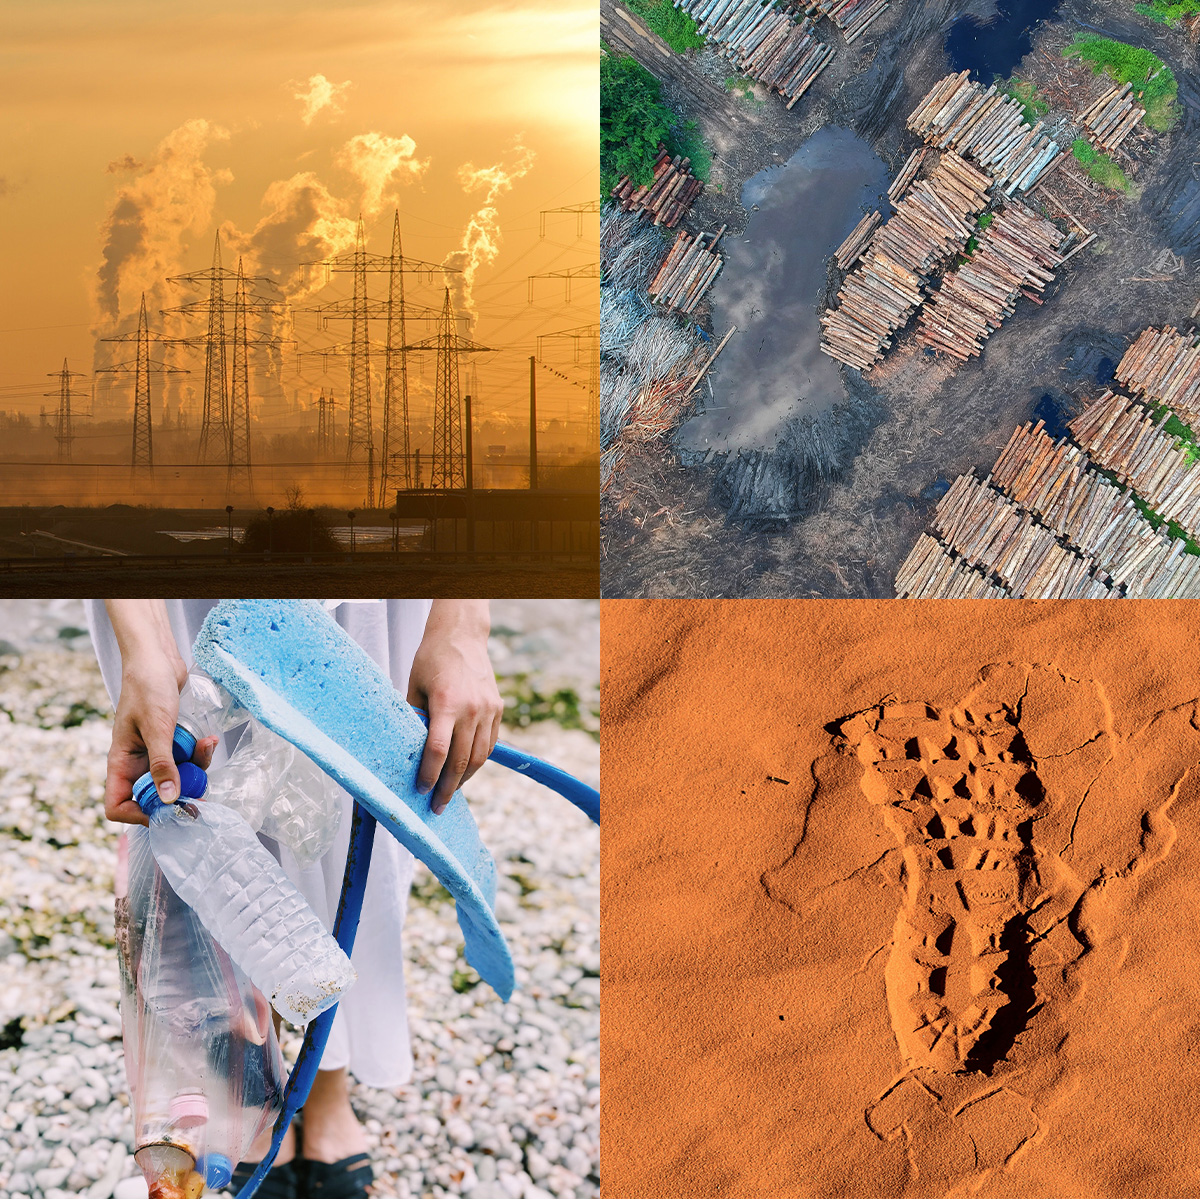 collage of images containing smoke stacks deforestation plastics footprint in sand